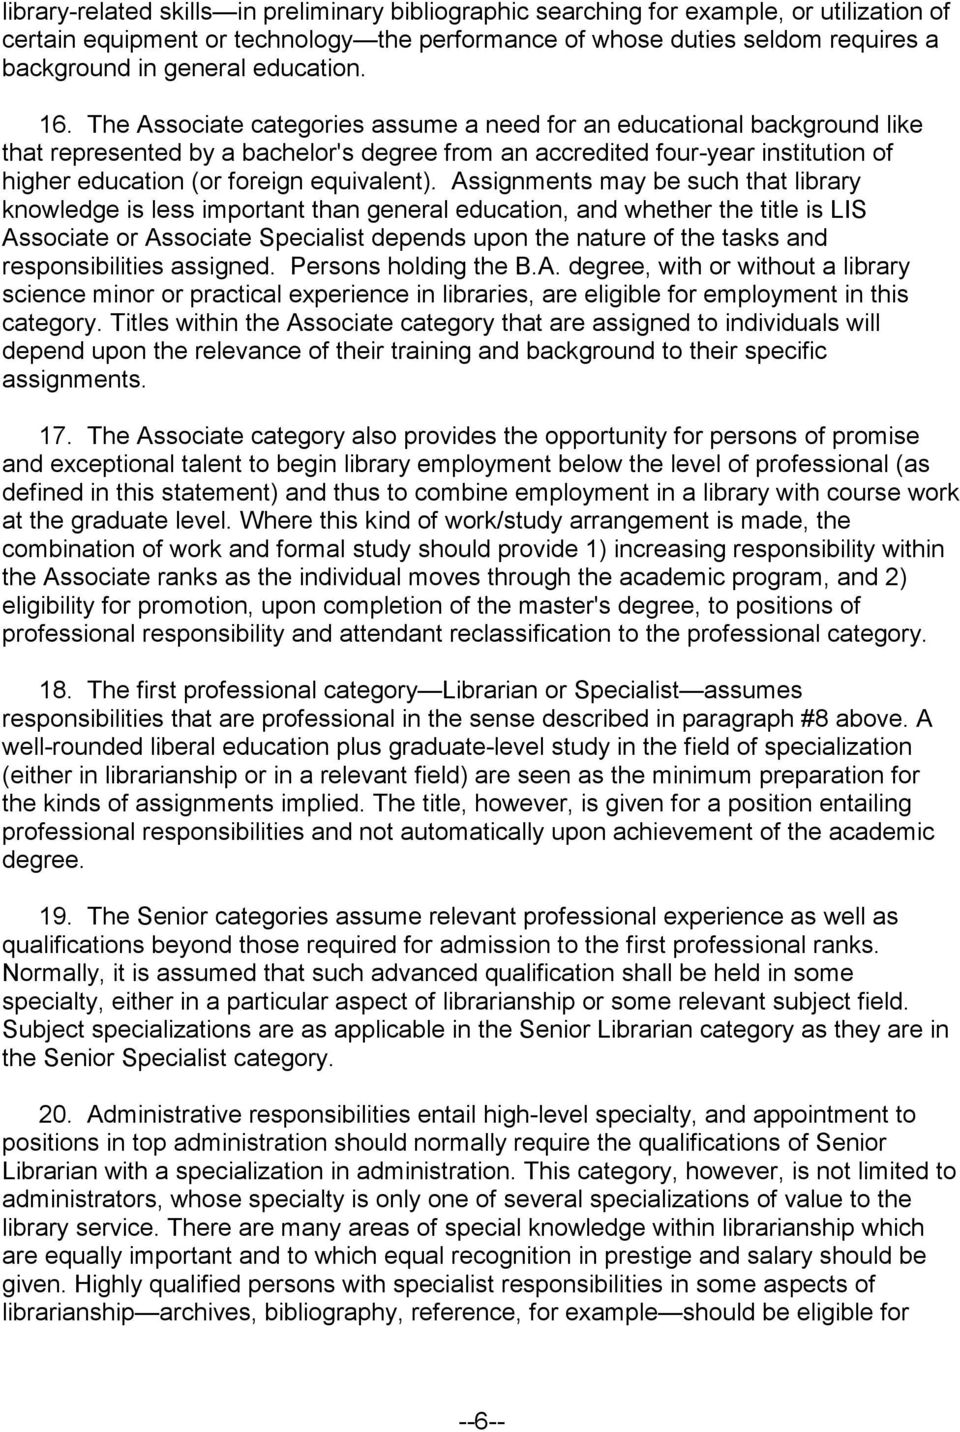 The Associate categories assume a need for an educational background like that represented by a bachelor's degree from an accredited four-year institution of higher education (or foreign equivalent).